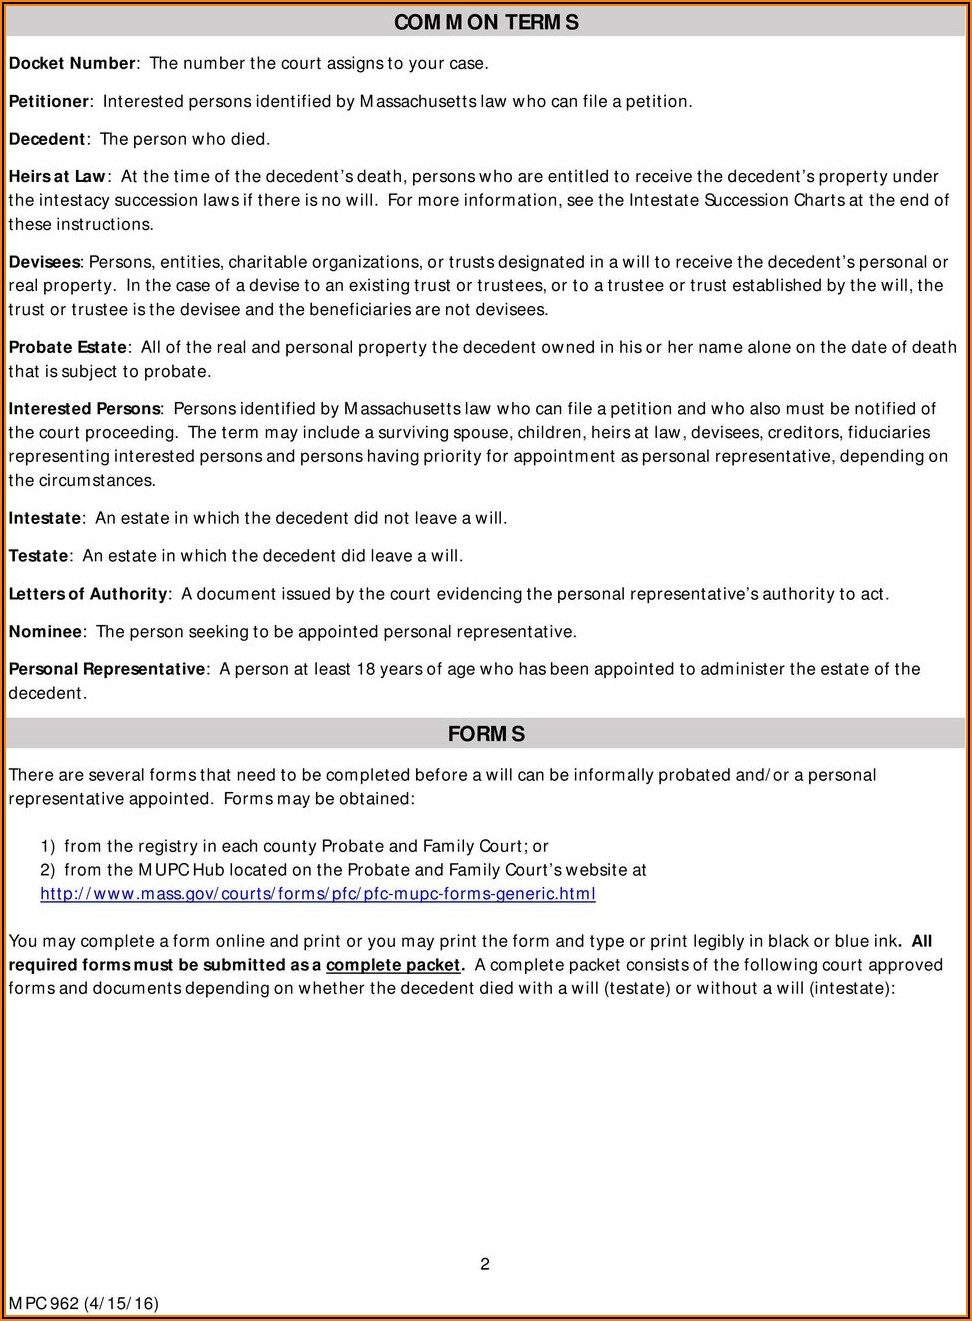 Texas Probate Forms Manual